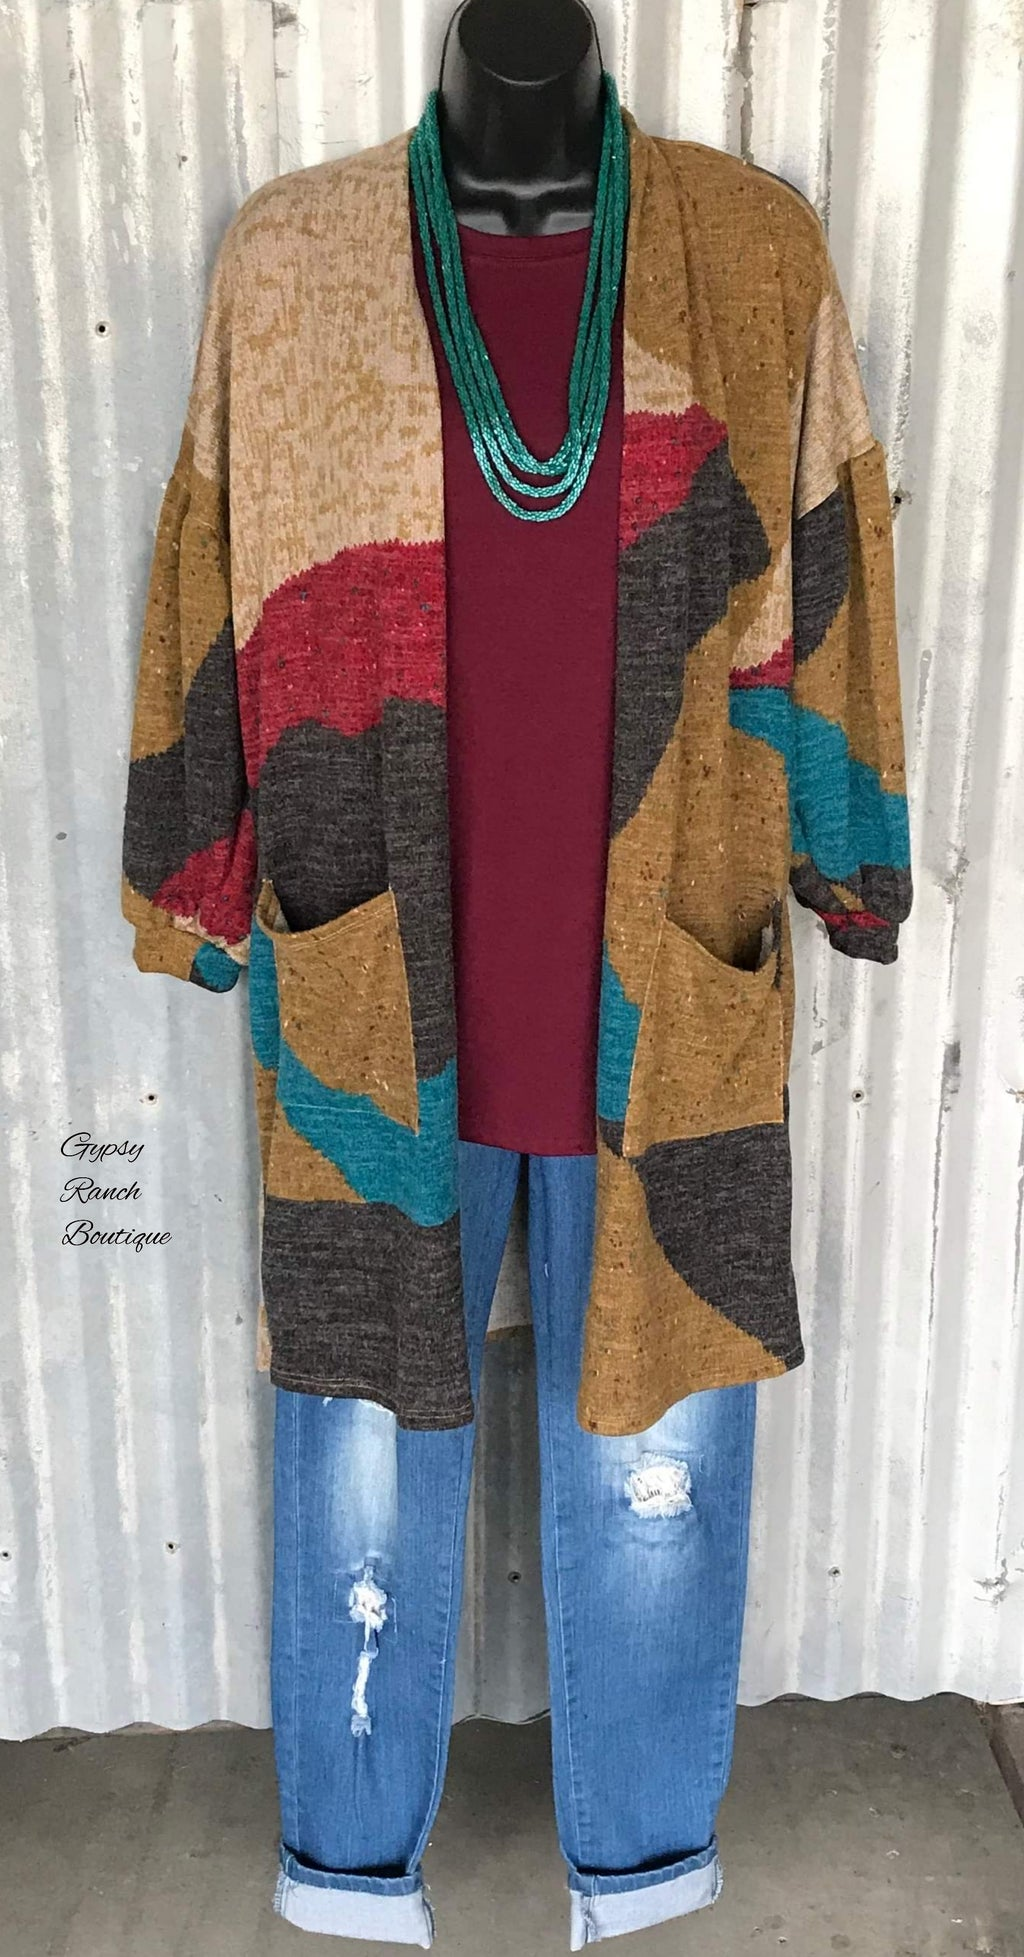 Gypsy Ranch Boutique -Apparel Sizes Small-3X & Exciting